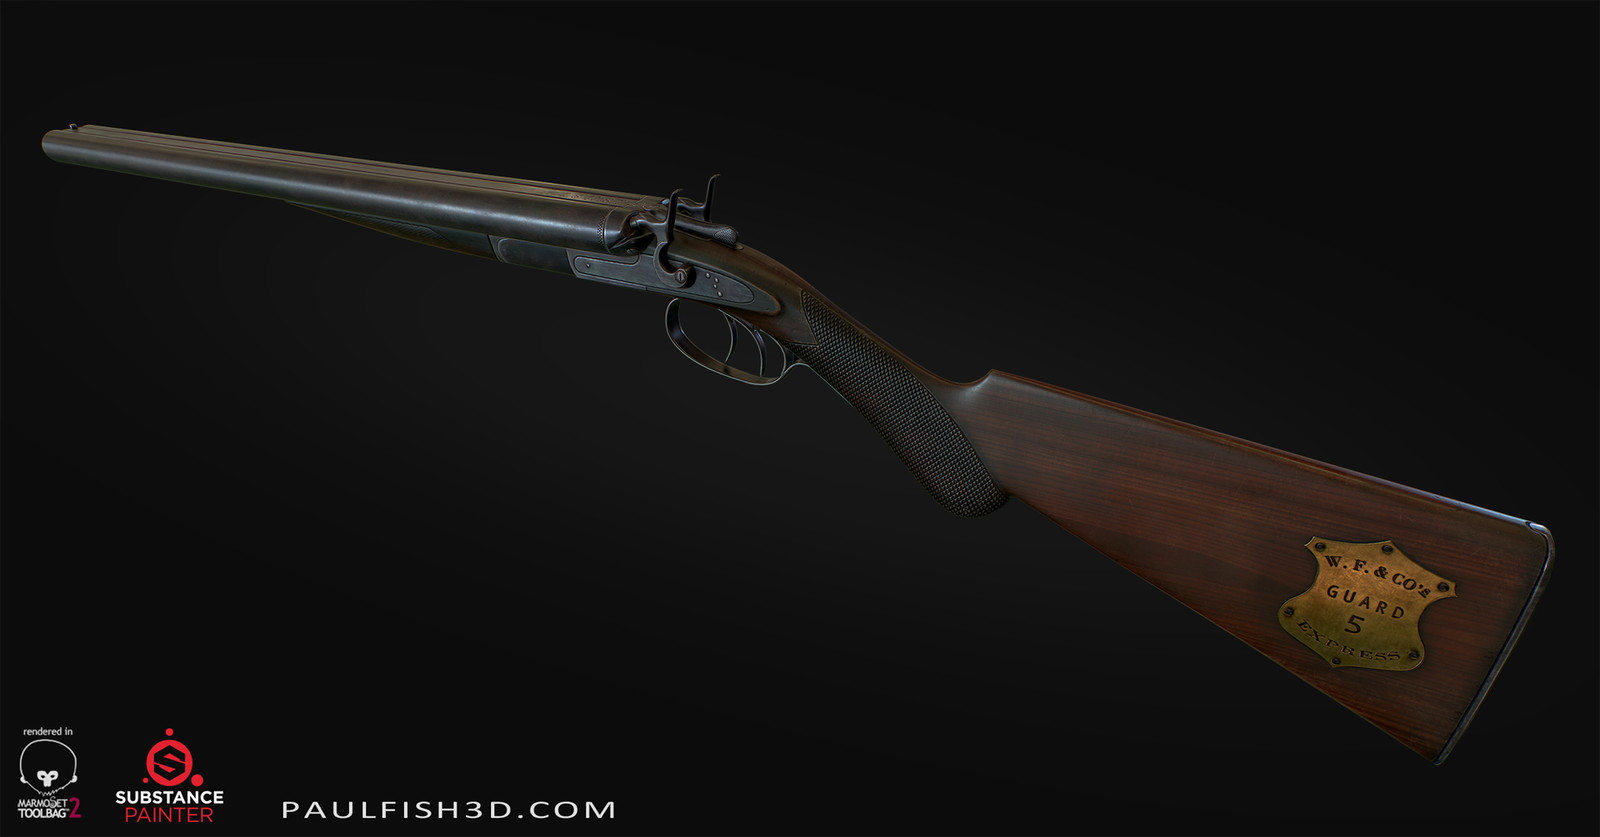 1882 Remington Double Barrel Shotgun